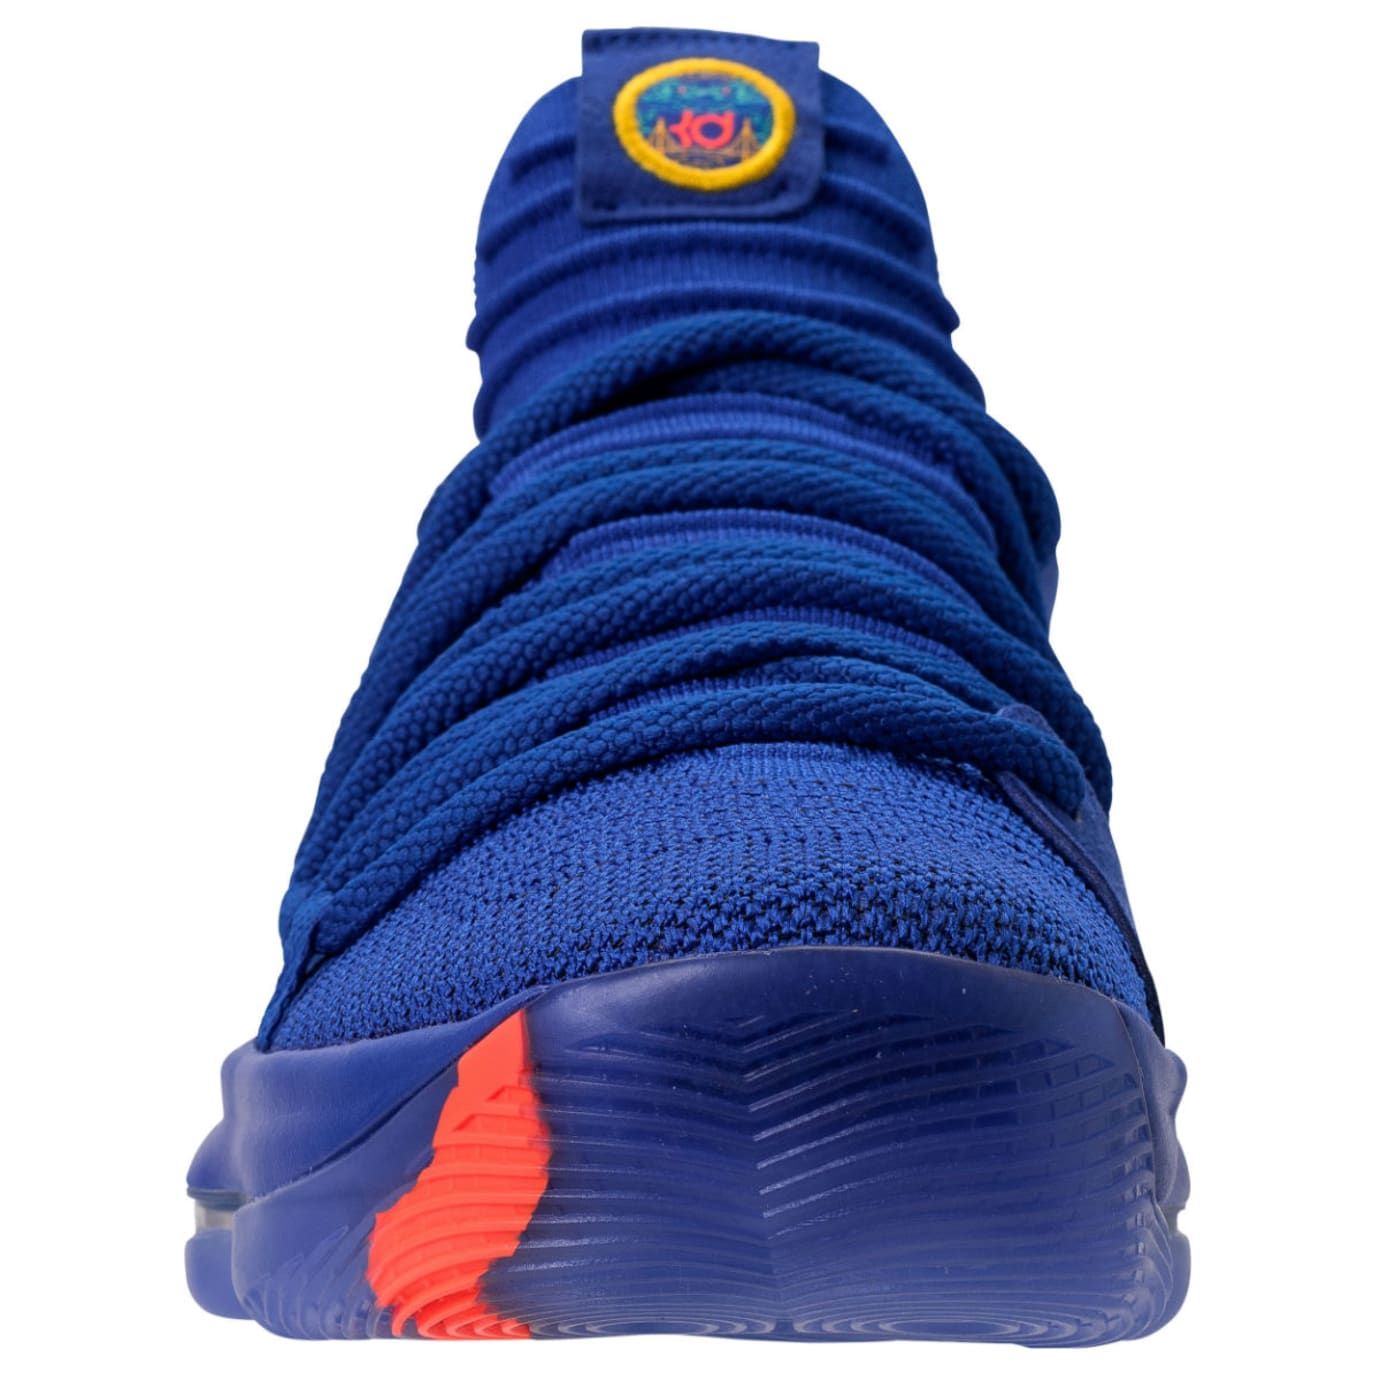 658938c51ed Nike KD 10 City Edition Release Date 897815-402 Front